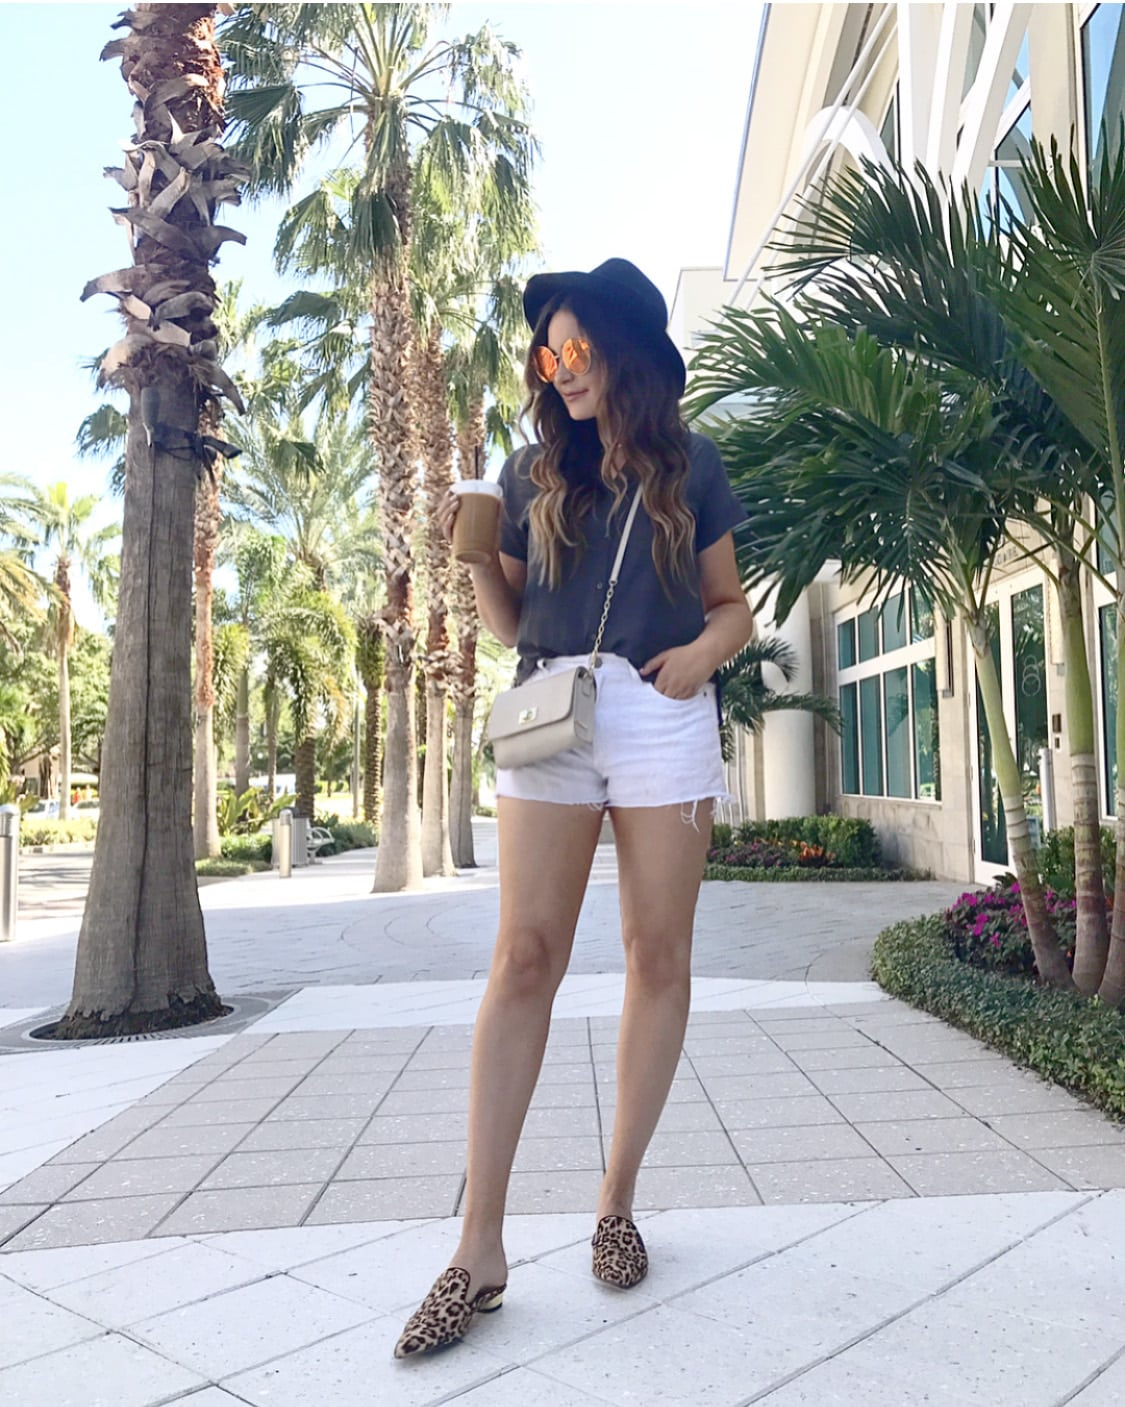 girls trip | st. petersburg florida |beauty blogger Mash Elle | florida | road trip | sunshine state round sunglasses hat white shorts